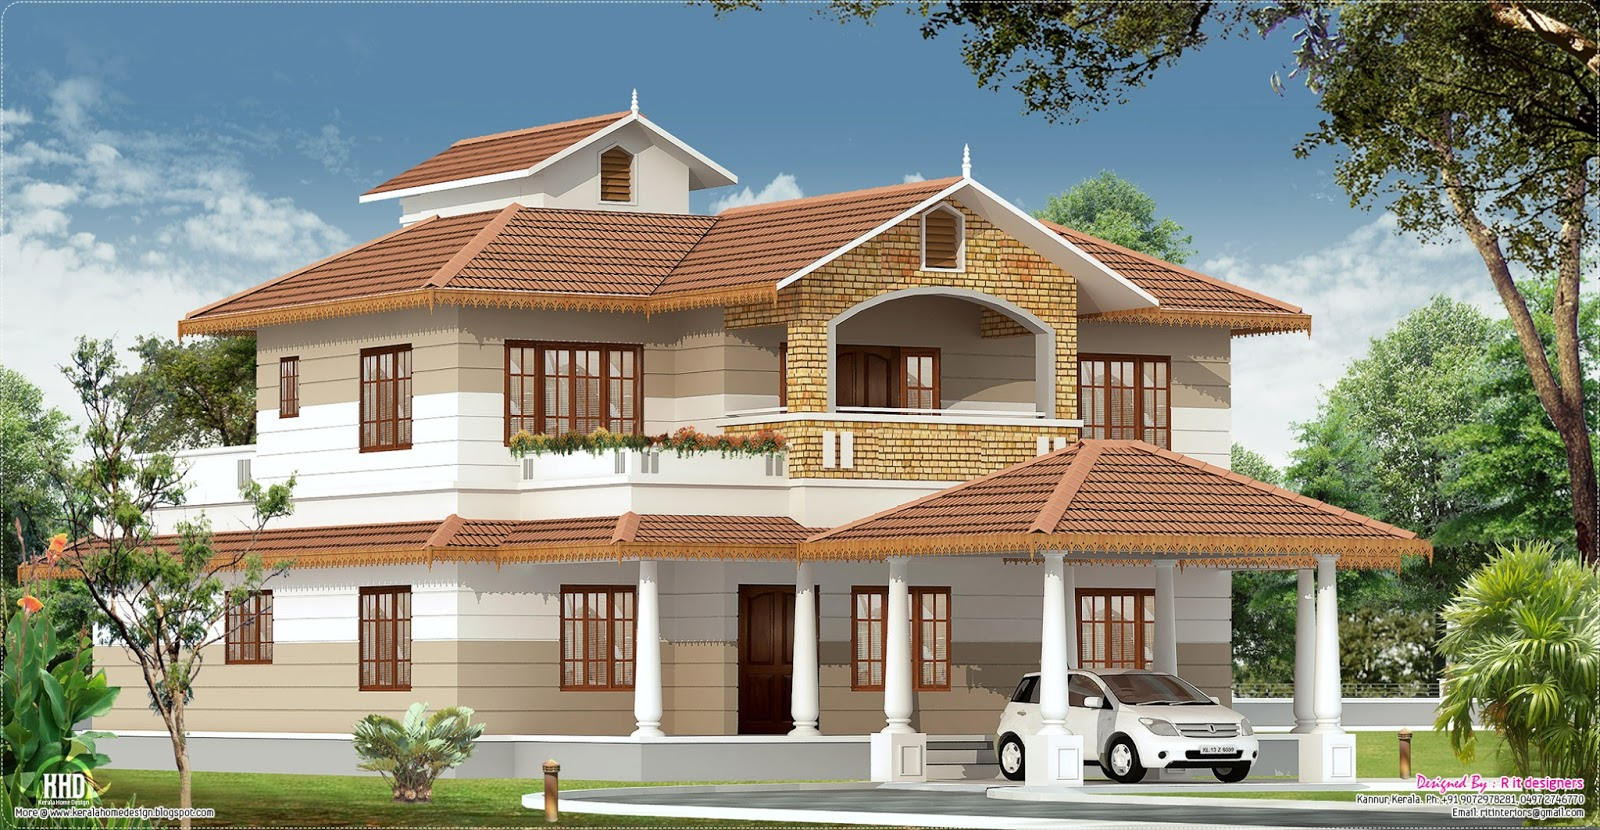 2700 kerala home with interior designs kerala for Www kerala house designs com